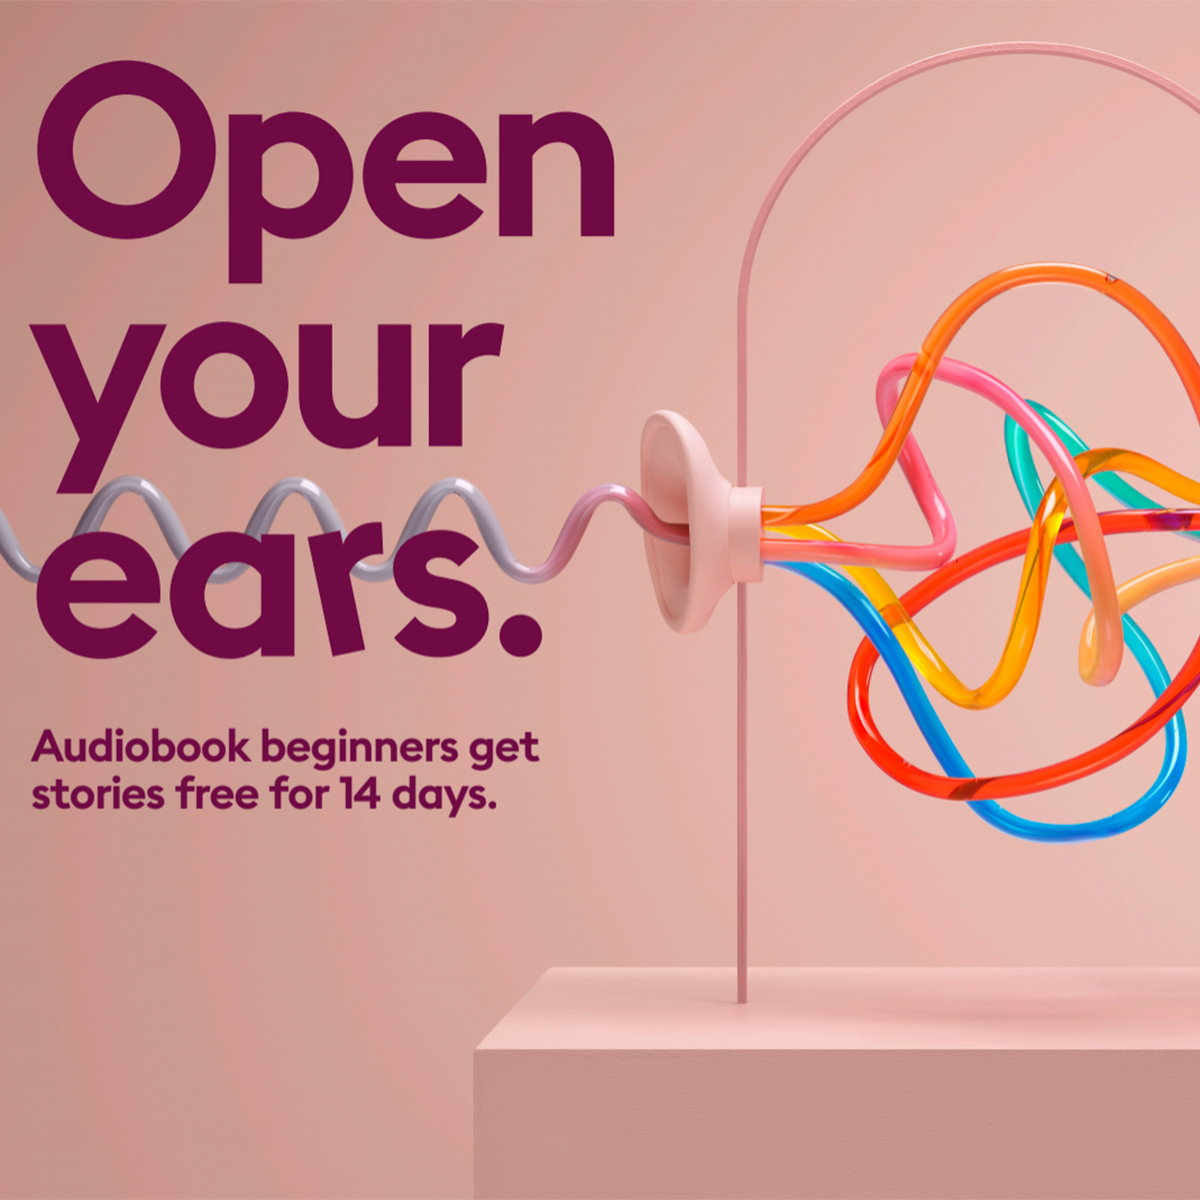 B-Reel X Storytel Showcase the Power of Audiobooks in New Campaign